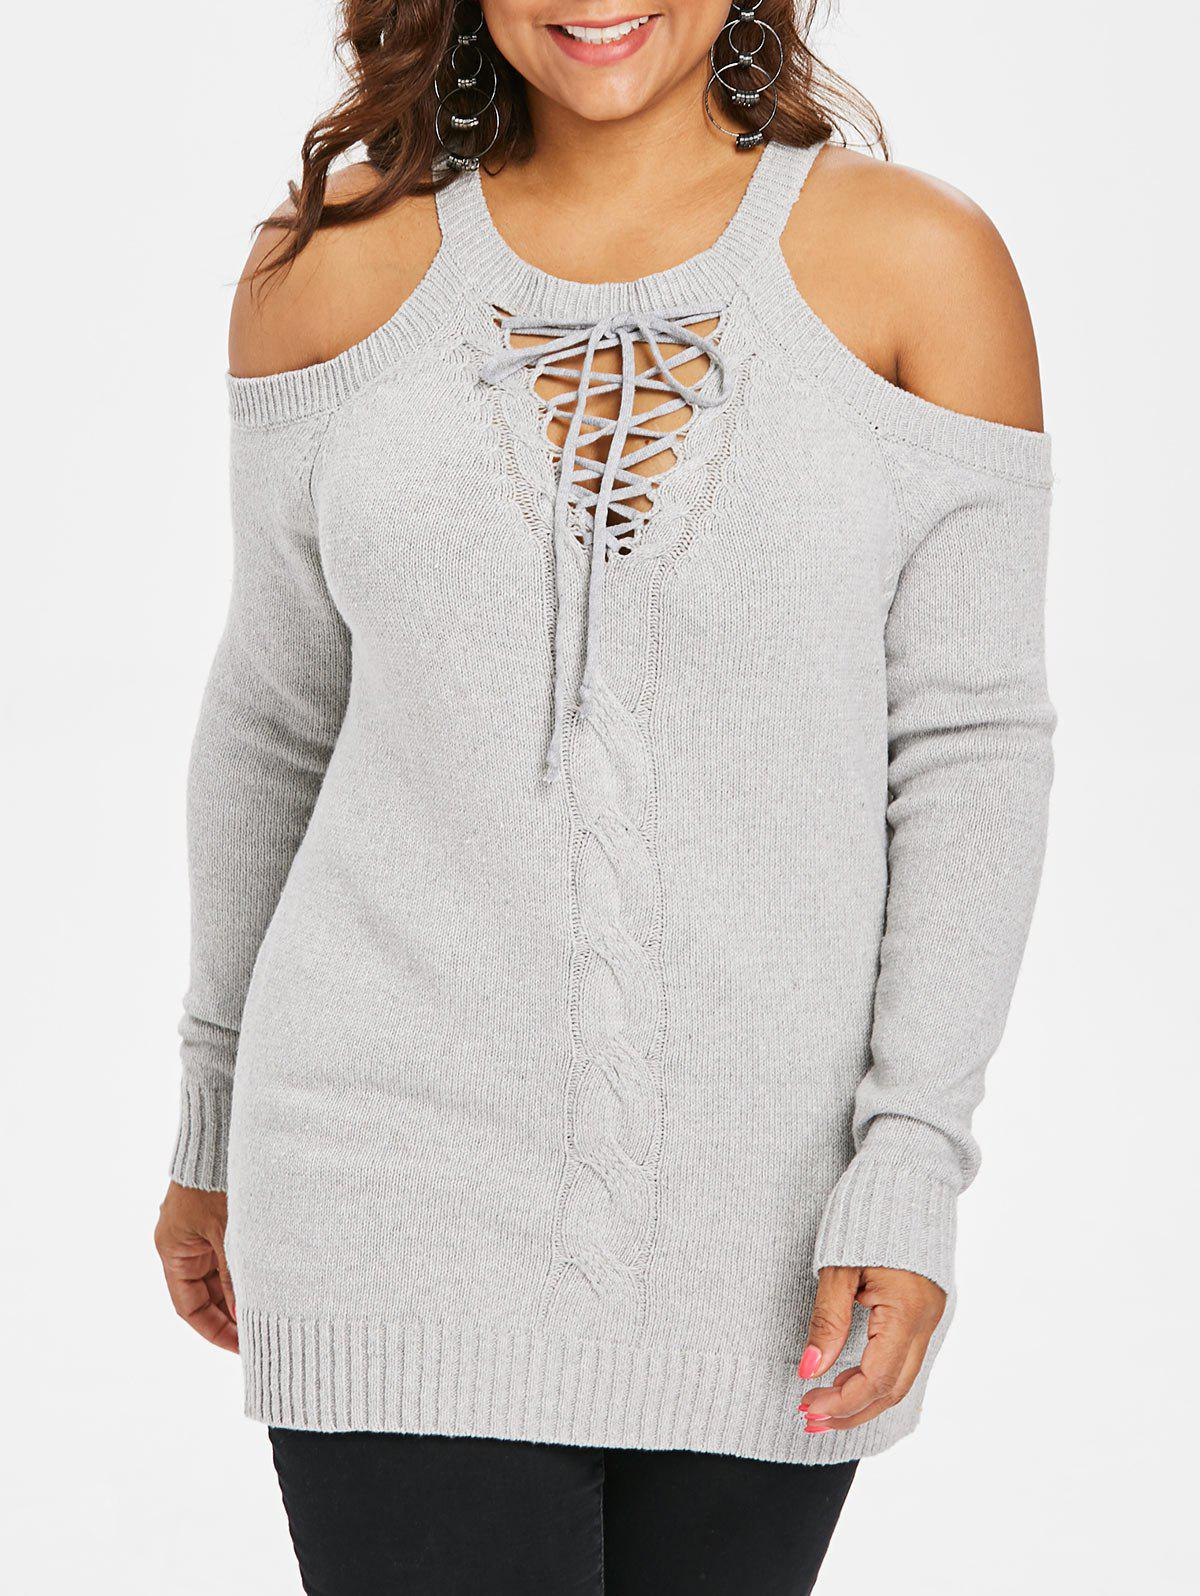 Plus Size Cut Out Cable Knit Sweater - LIGHT GRAY L